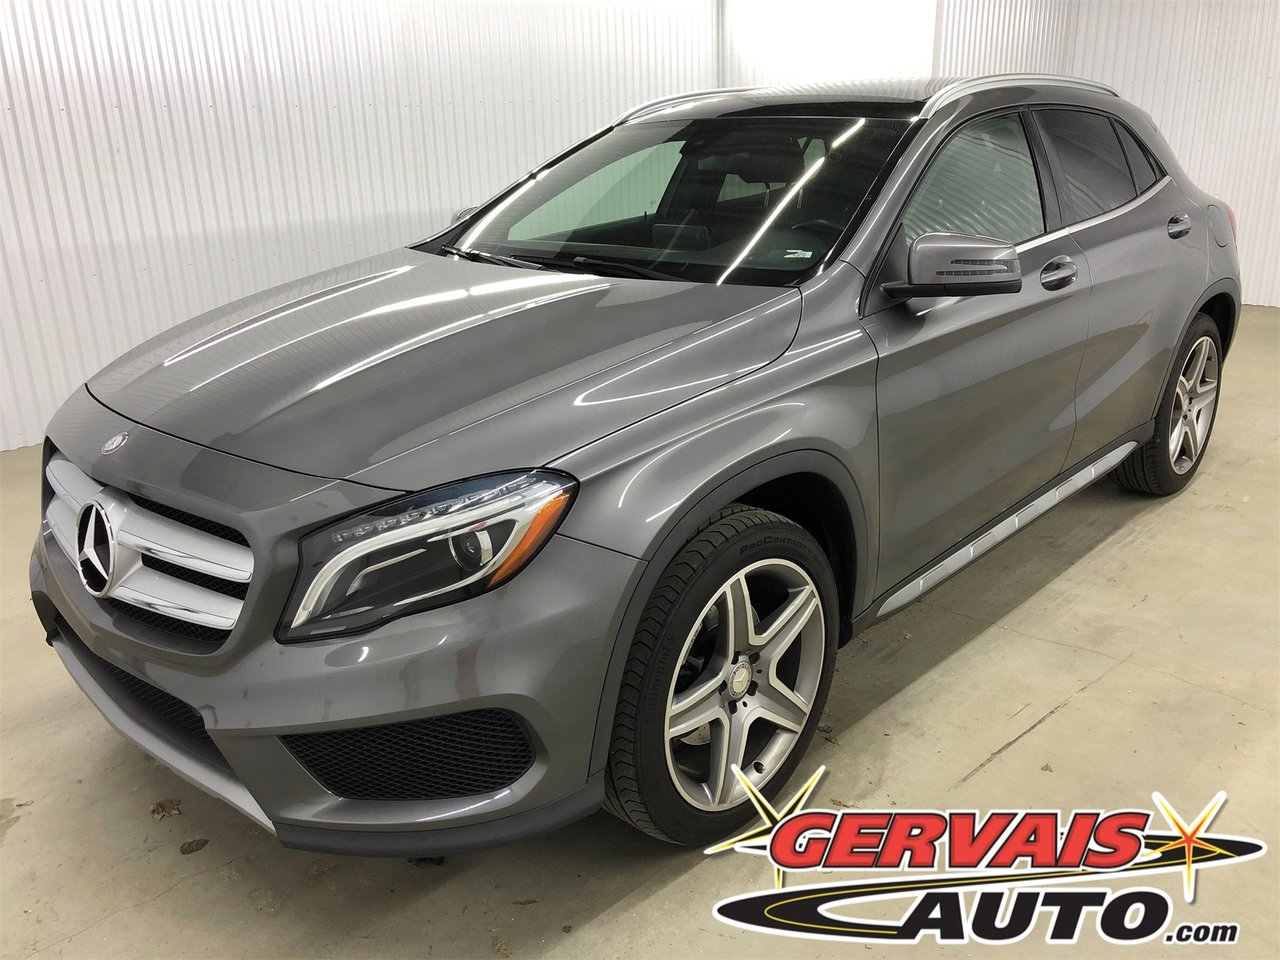 Mercedes-Benz GLA 2016 GLA 250 4Matic GPS Cuir Toit Panoramique MAGS